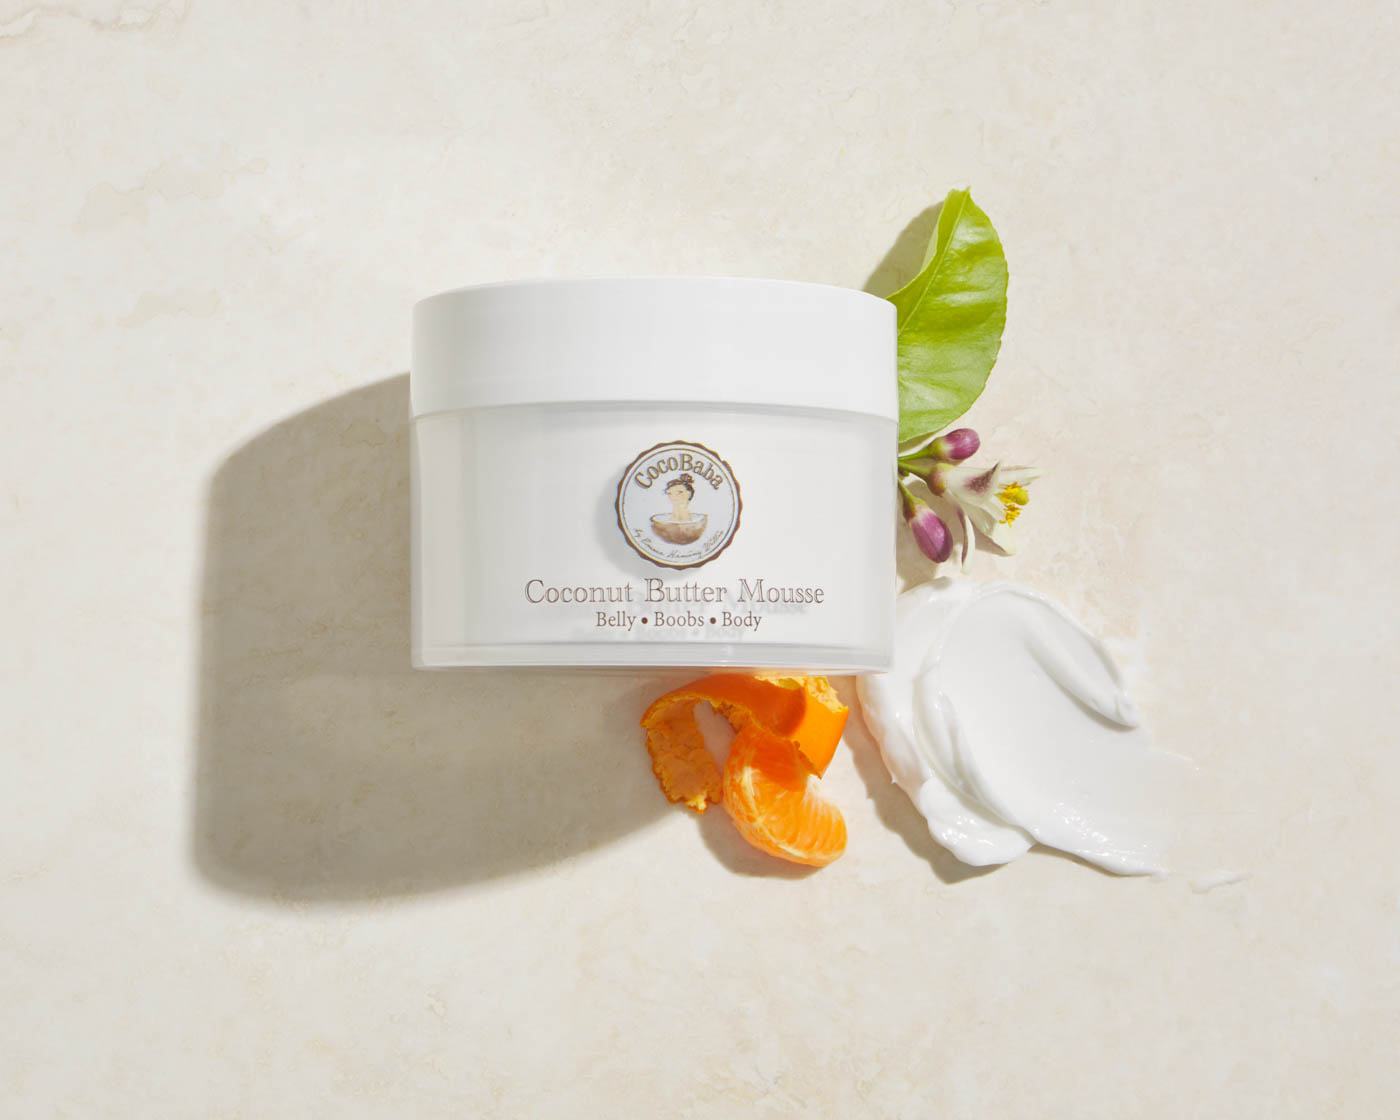 coco-baba-cocobaba-coconut-beauty-product-commercial-photography-damion-lloyd-butter-mousse